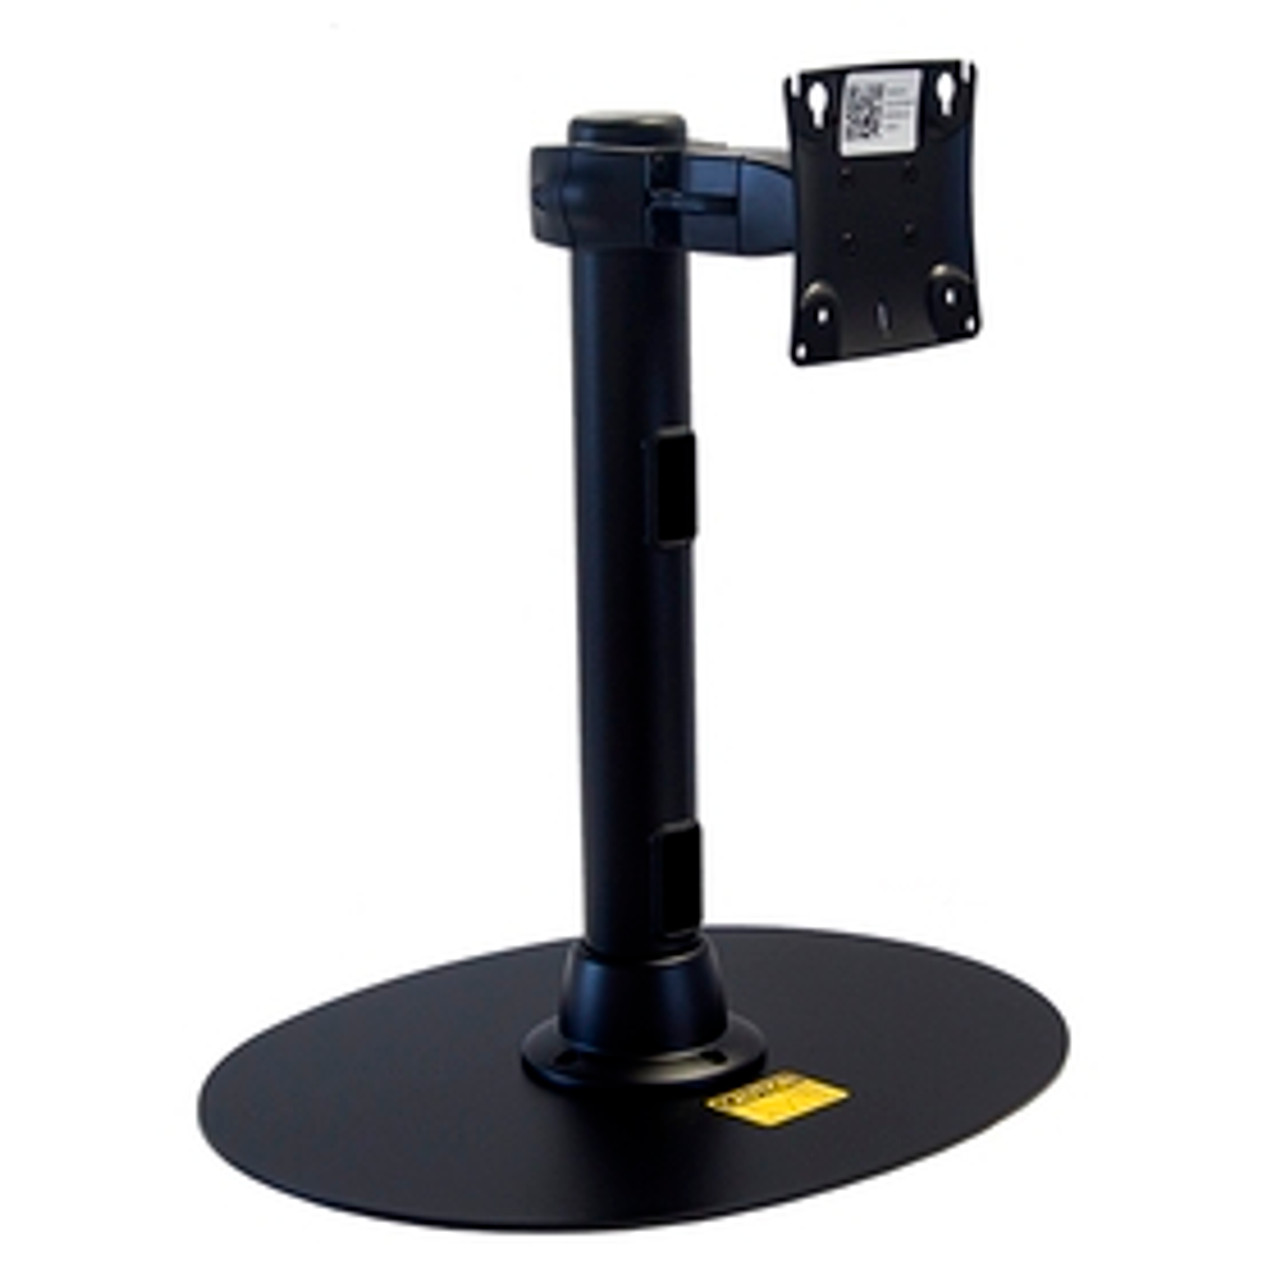 POS Preconfigured Freestanding Monitor Mount 16 inch Pole